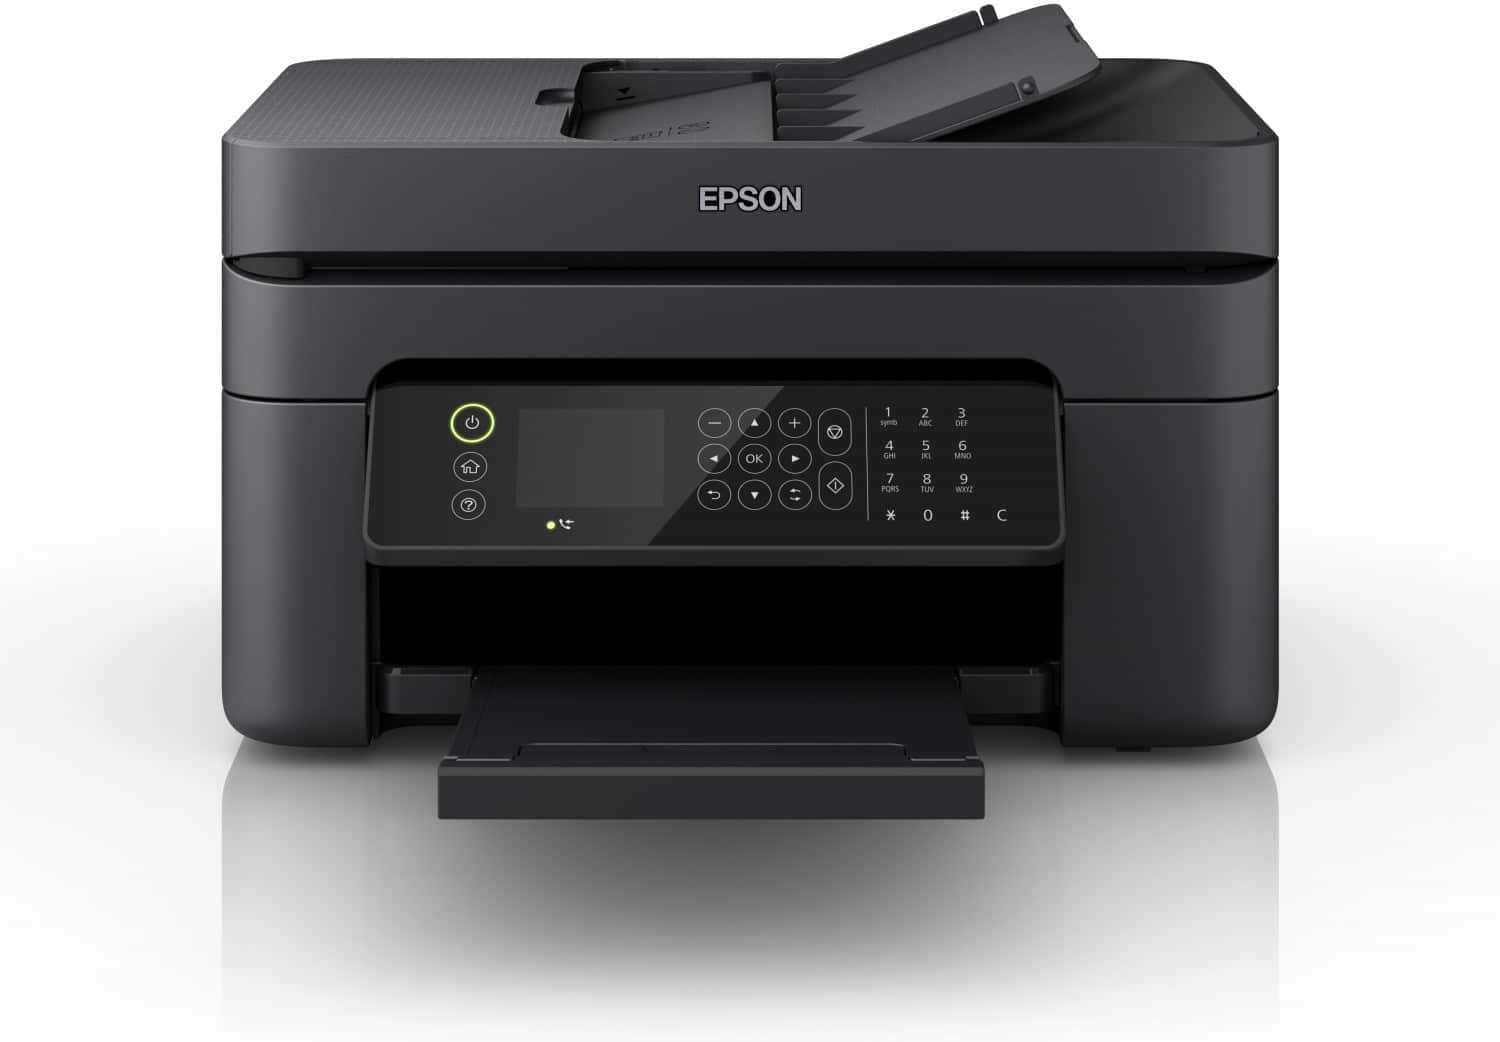 Impresora Epson WorkForce WF-2850DWF caracteristicas